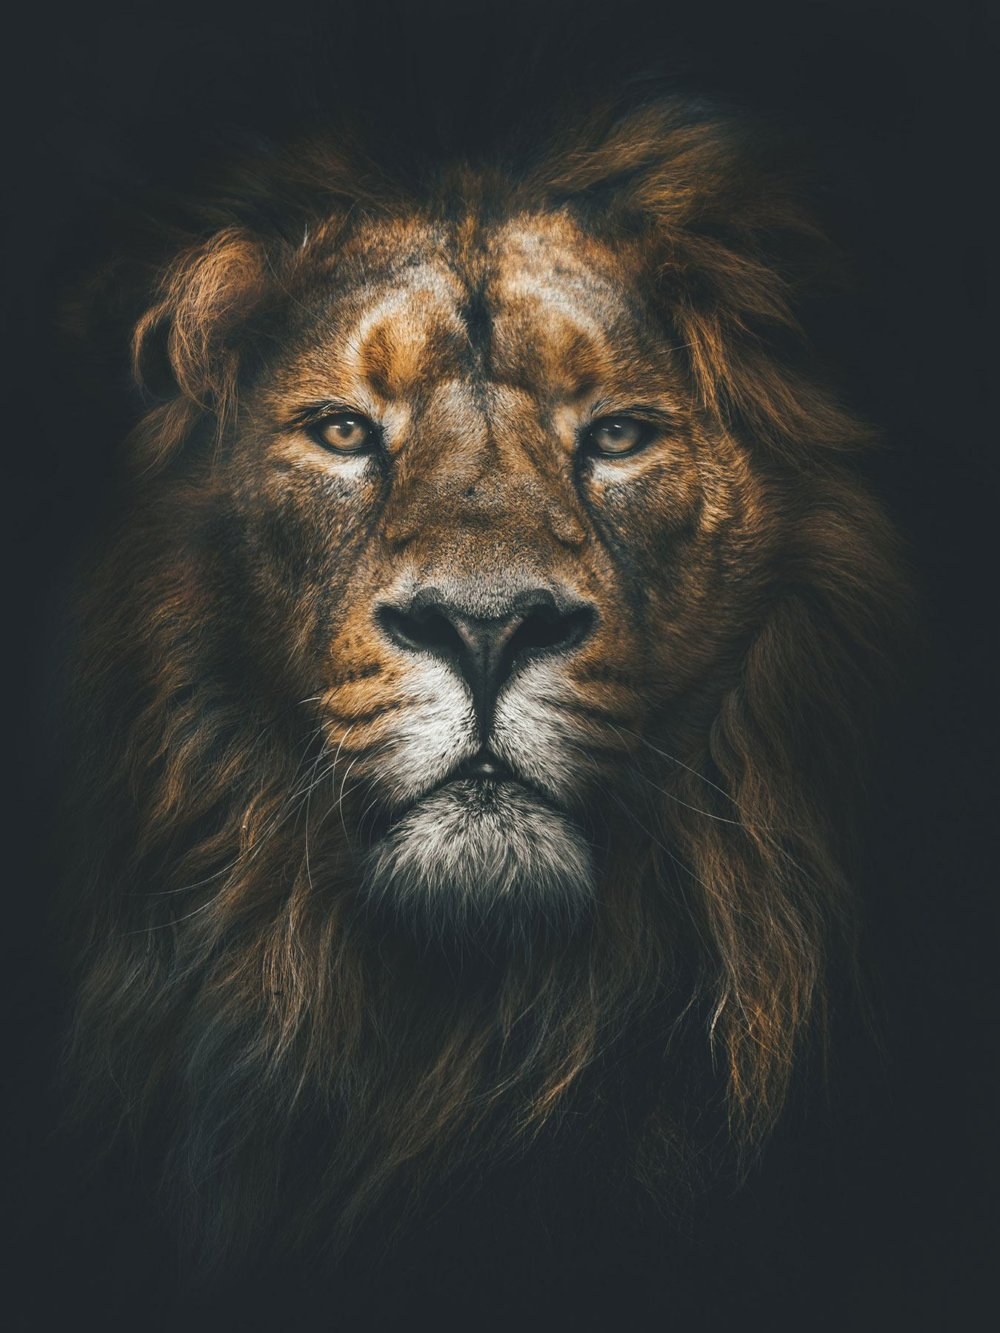 Lion Web Design